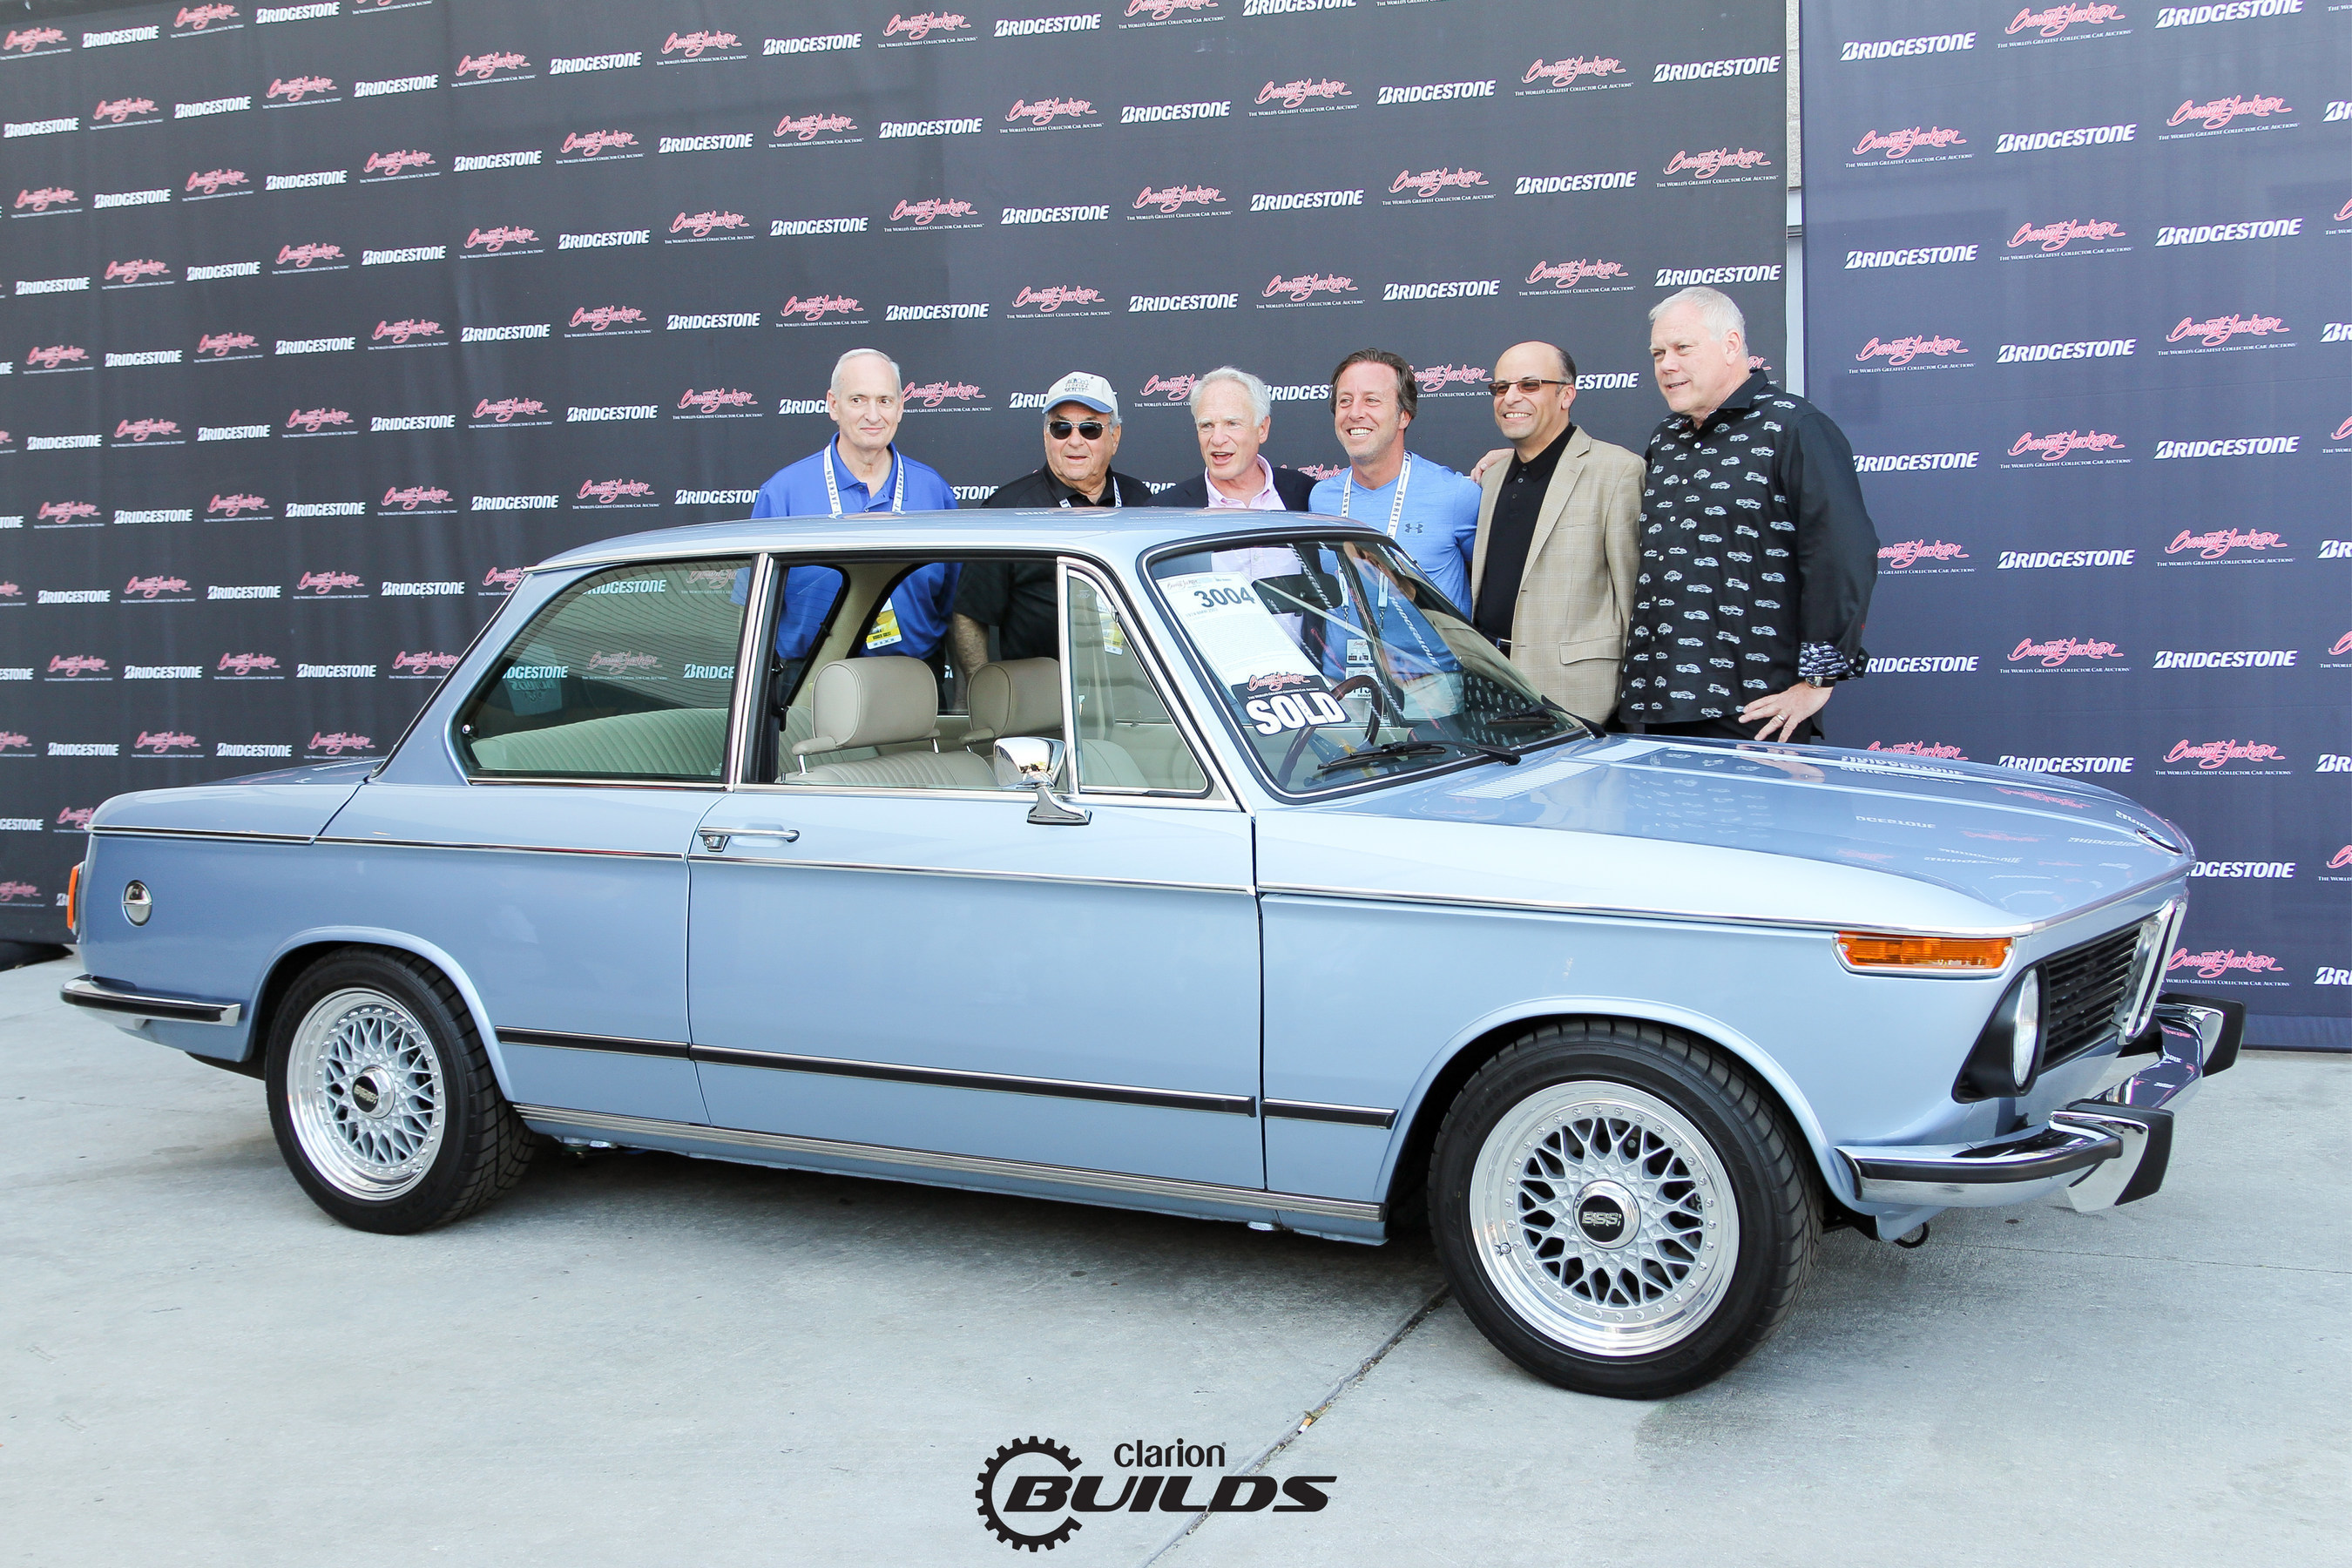 Clarion Builds 1974 BMW 2002 sells at Barrett-Jackson Palm Beach for $125,000, all proceeds donated to TGen Foundation to support cancer research.